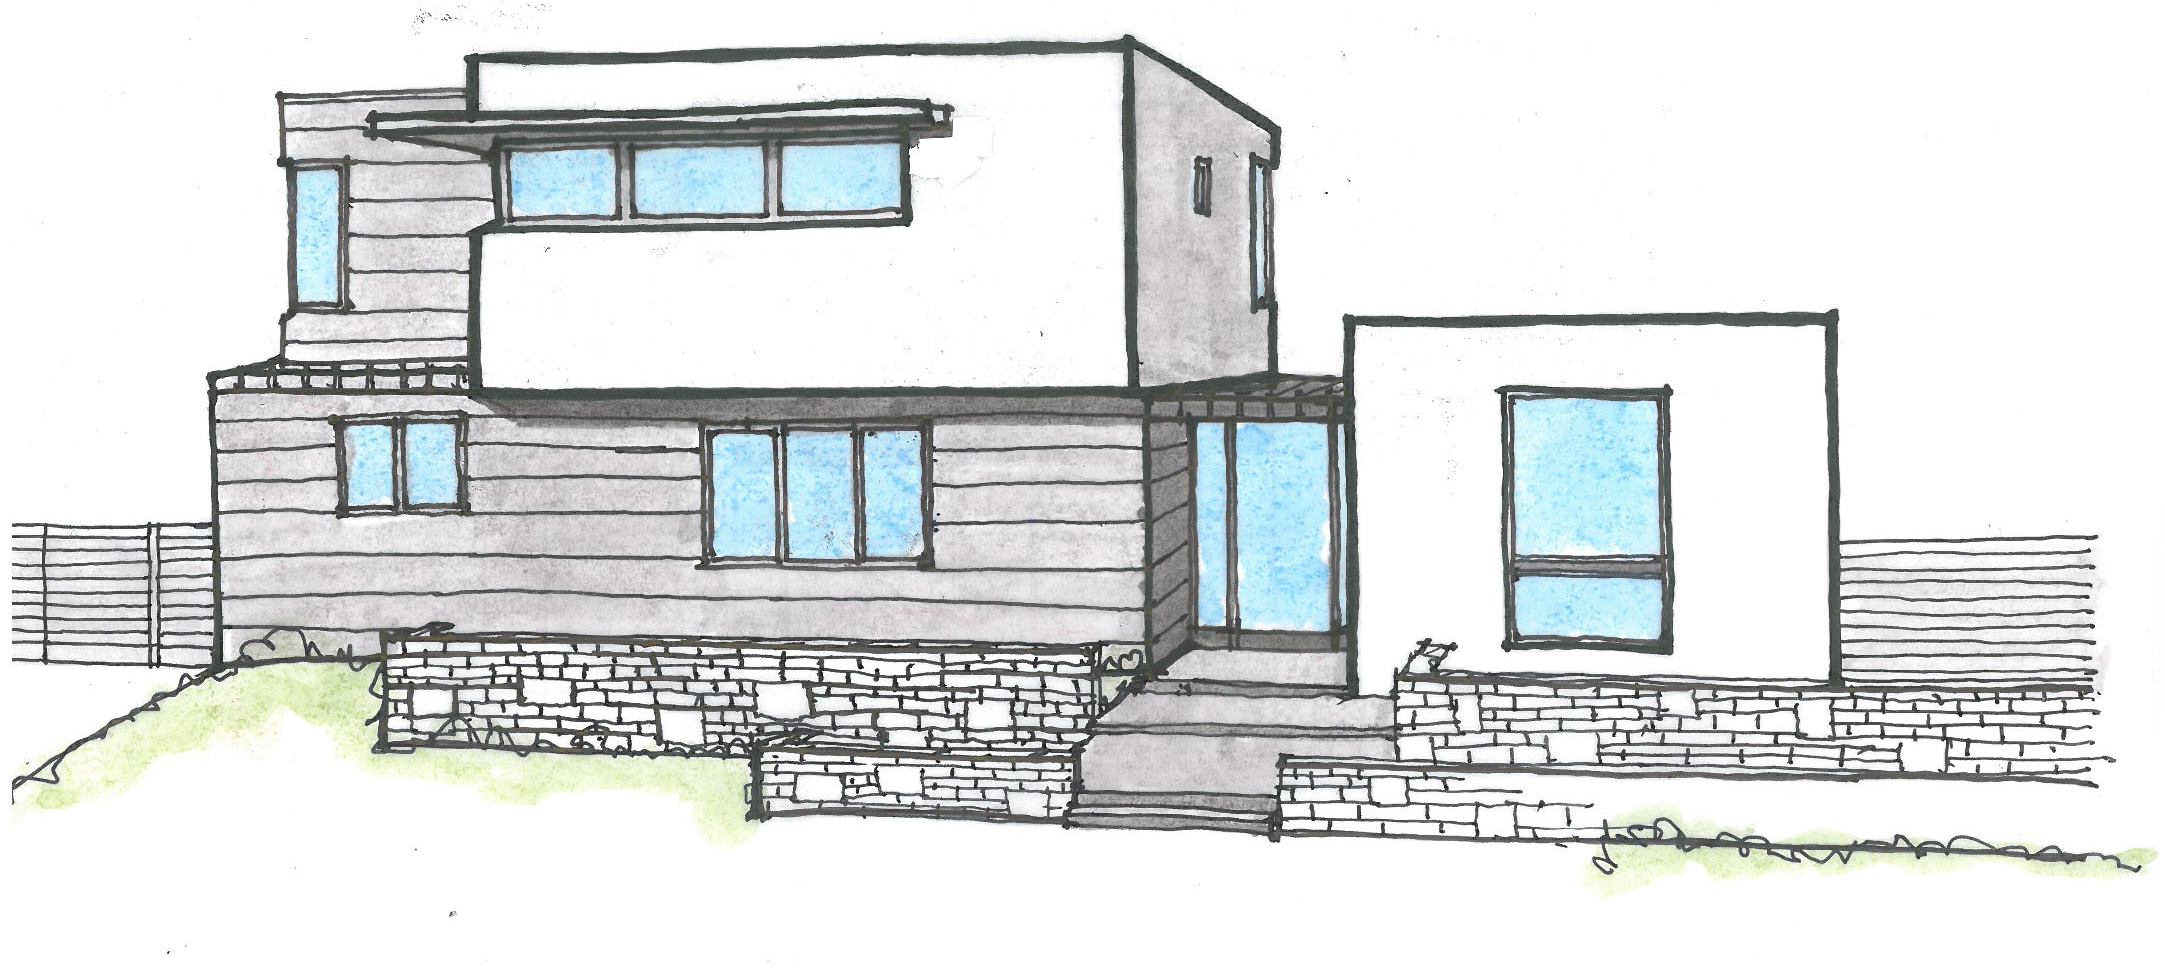 House architecture drawing at free for for Online architecture drawing